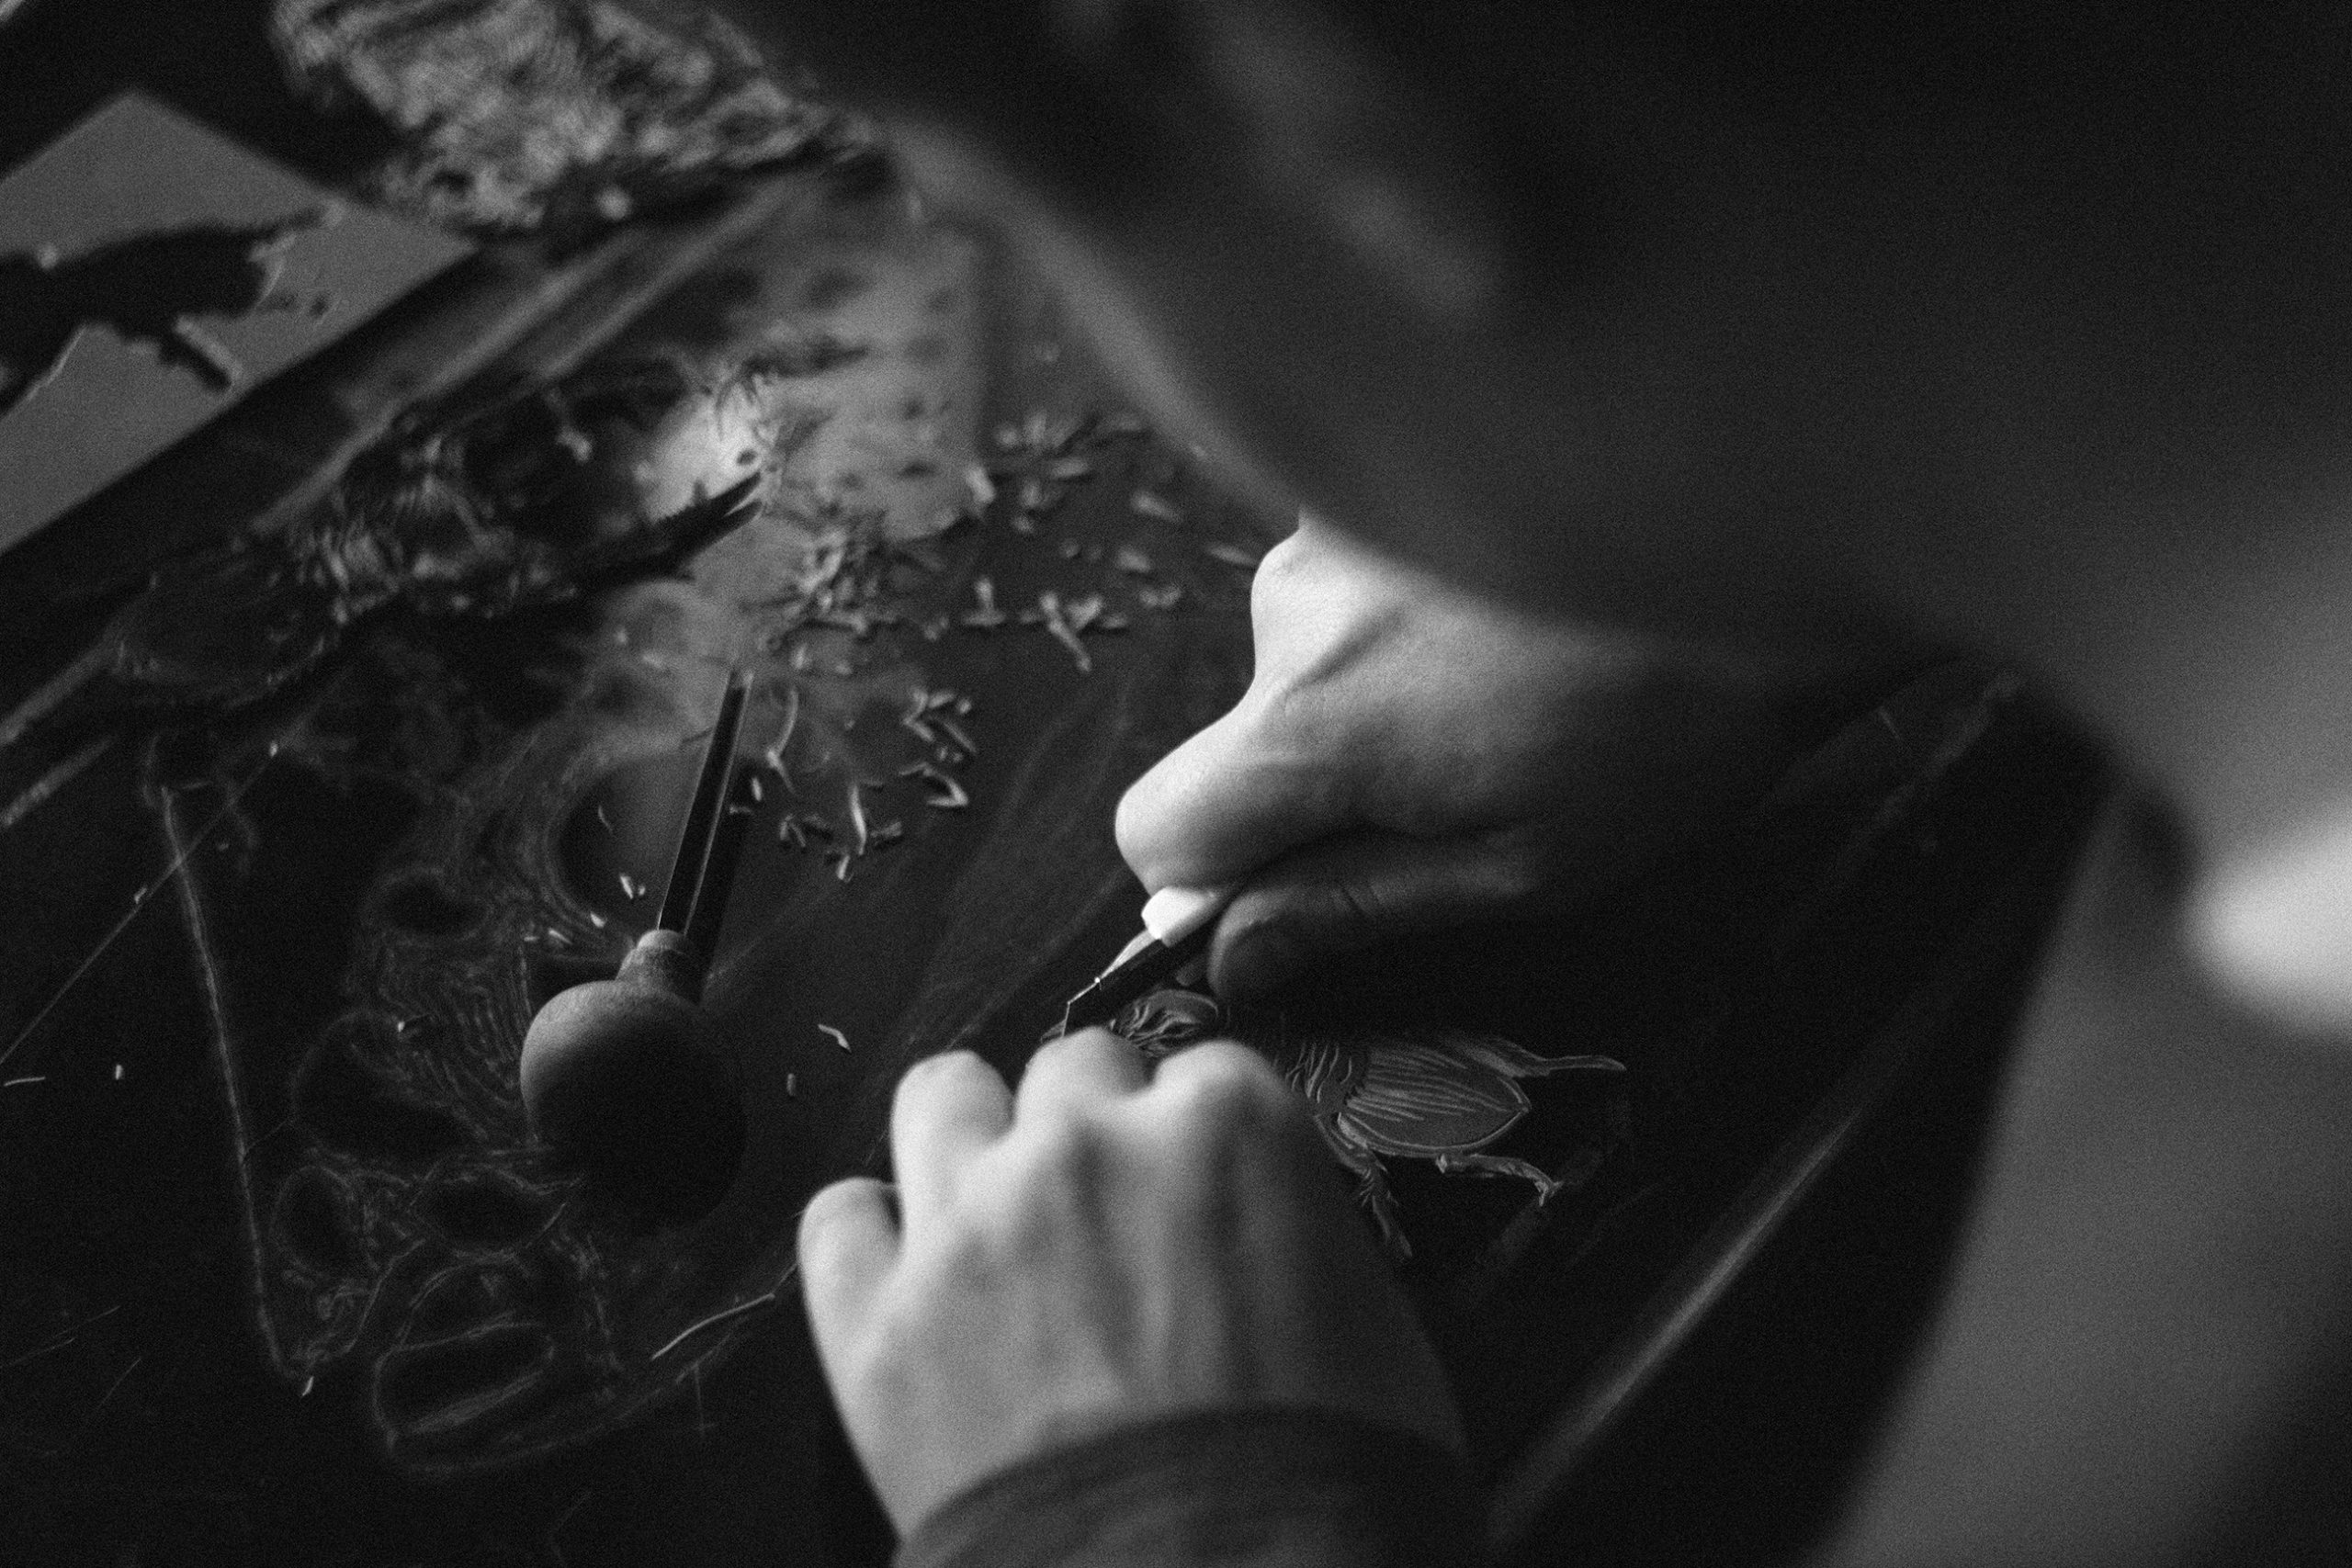 Black and white image of a man working leather.